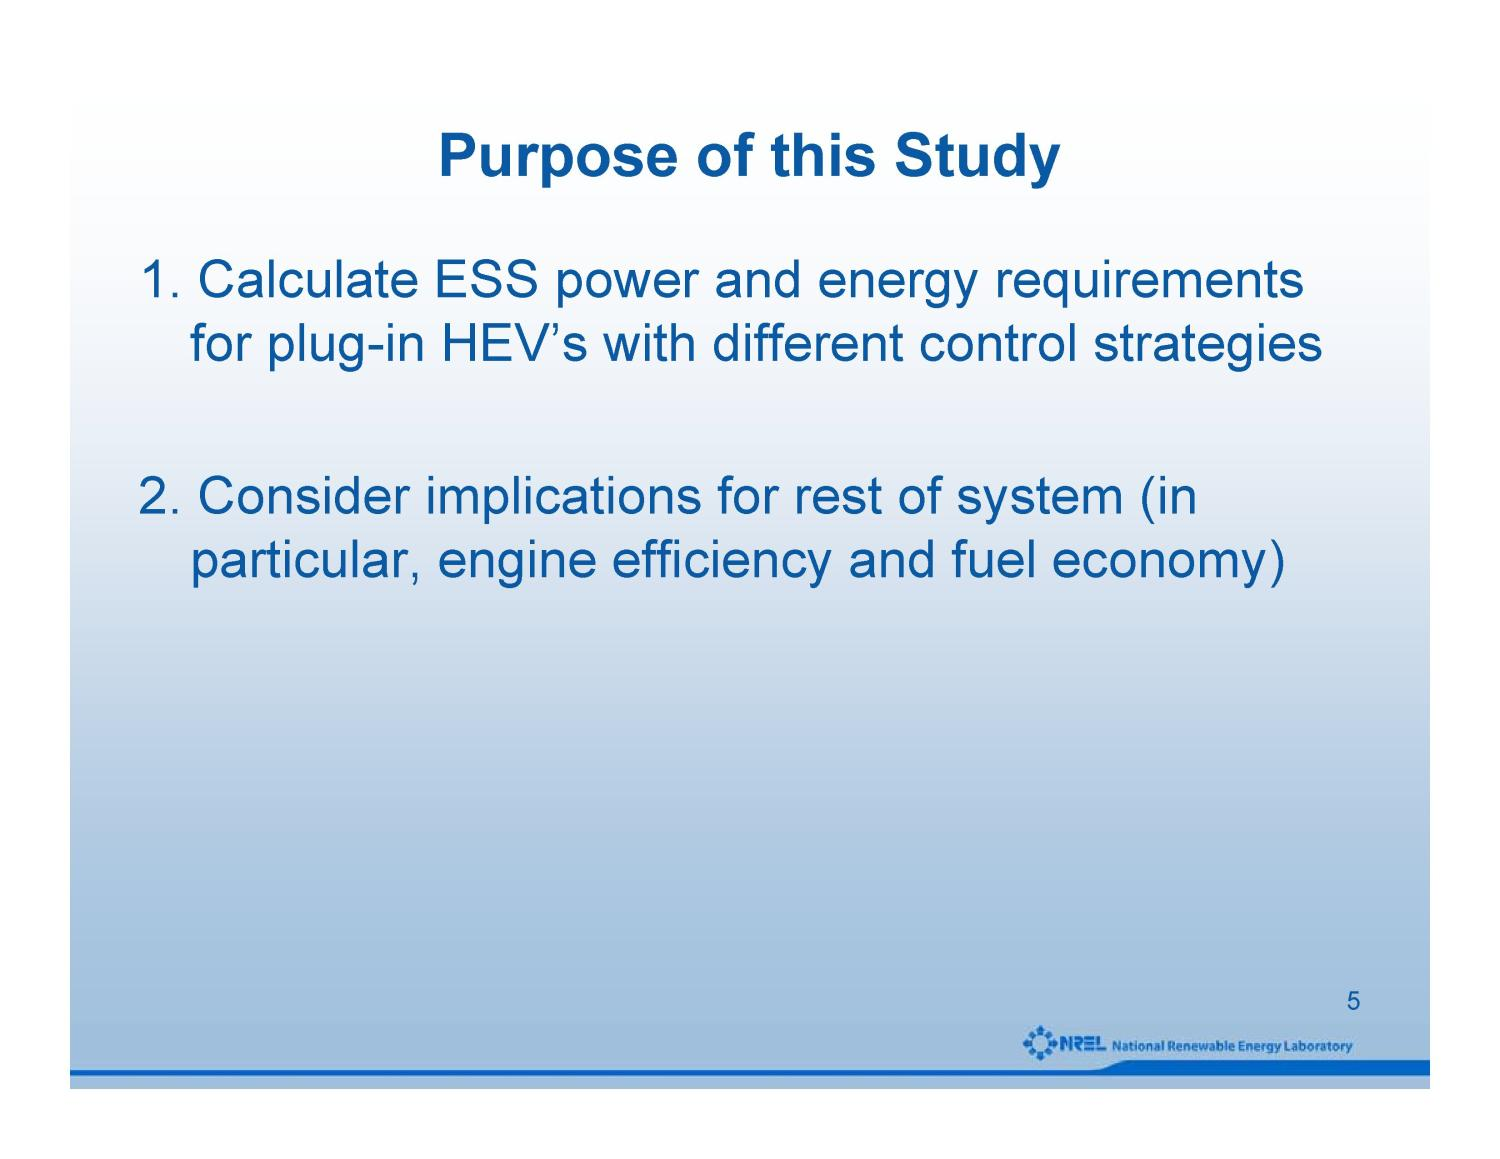 Energy Storage System Considerations for Grid-Charged Hybrid Electric Vehicles                                                                                                      [Sequence #]: 5 of 20